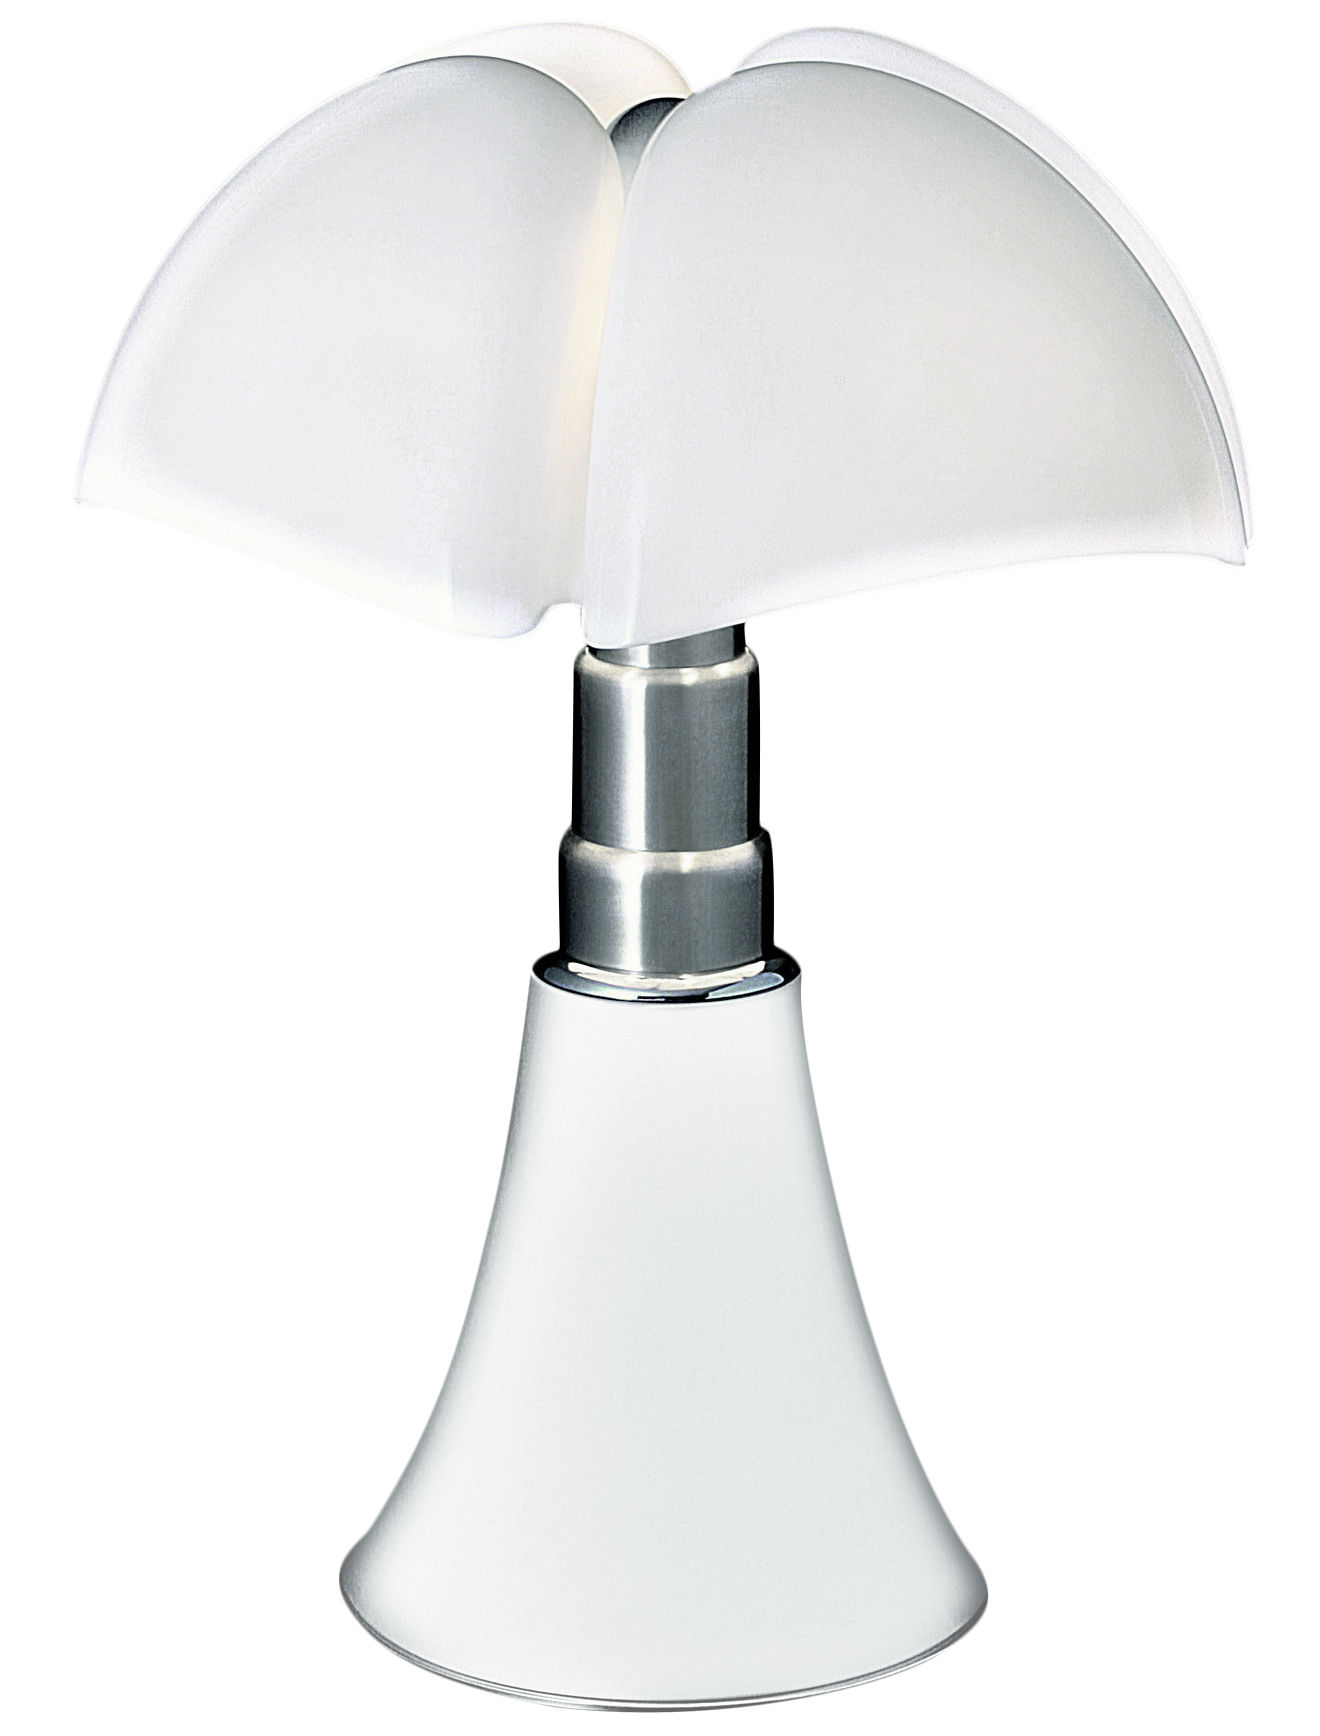 Lighting - Table Lamps - Pipistrello LED Table lamp - / H 66 to 86 cm by Martinelli Luce - White / White lampshade - Galvanized steel, Lacquered aluminium, Opaline methacrylate